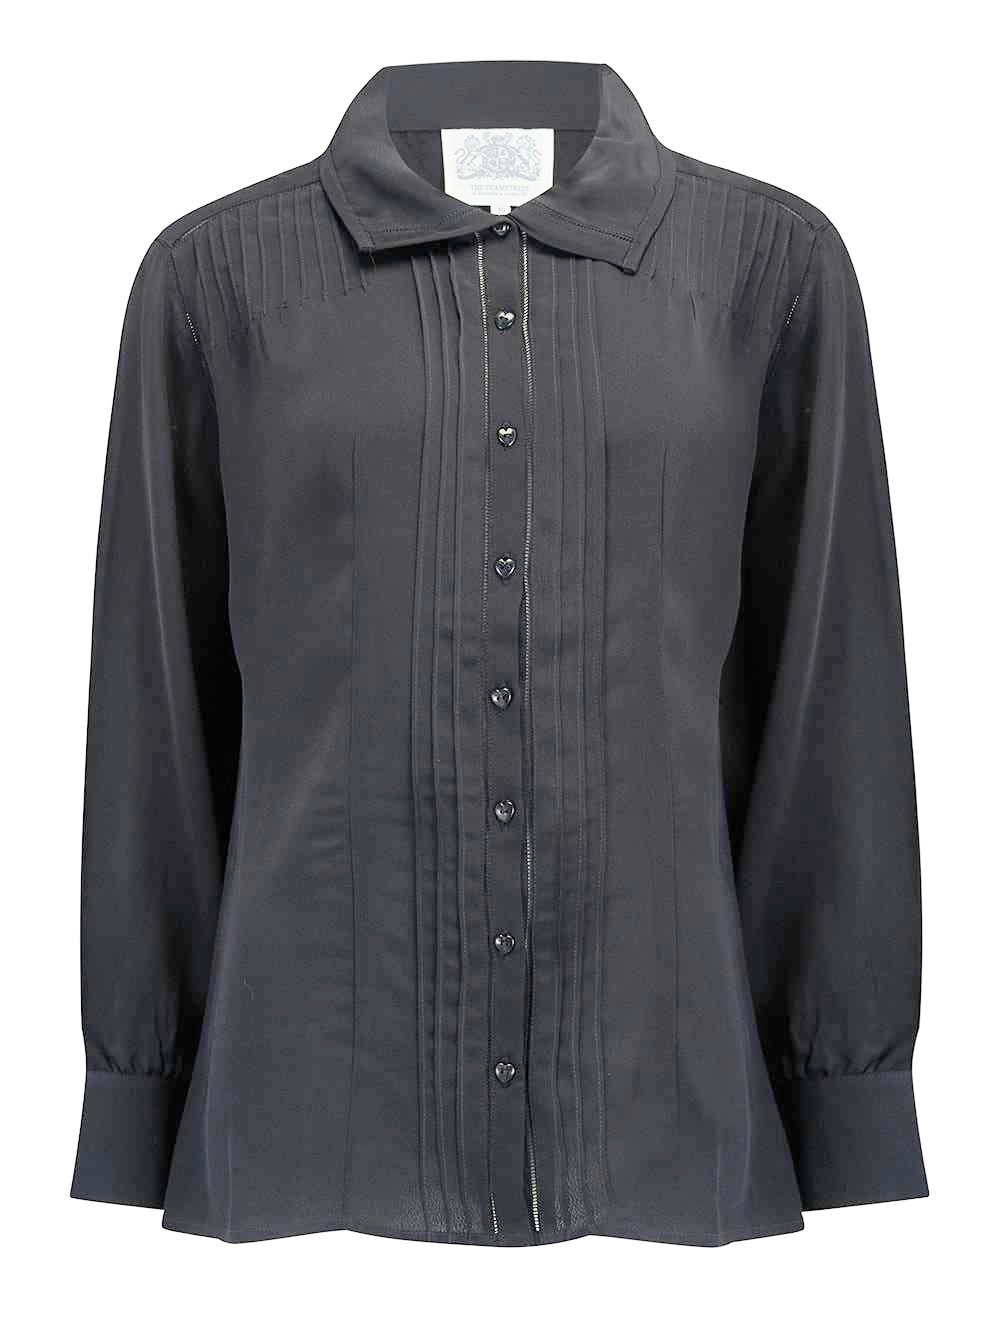 """Alice"" Blouse in Black by The Seamstress Of Bloomsbury, Authentic & Classic 1940s Vintage Inspired Style"